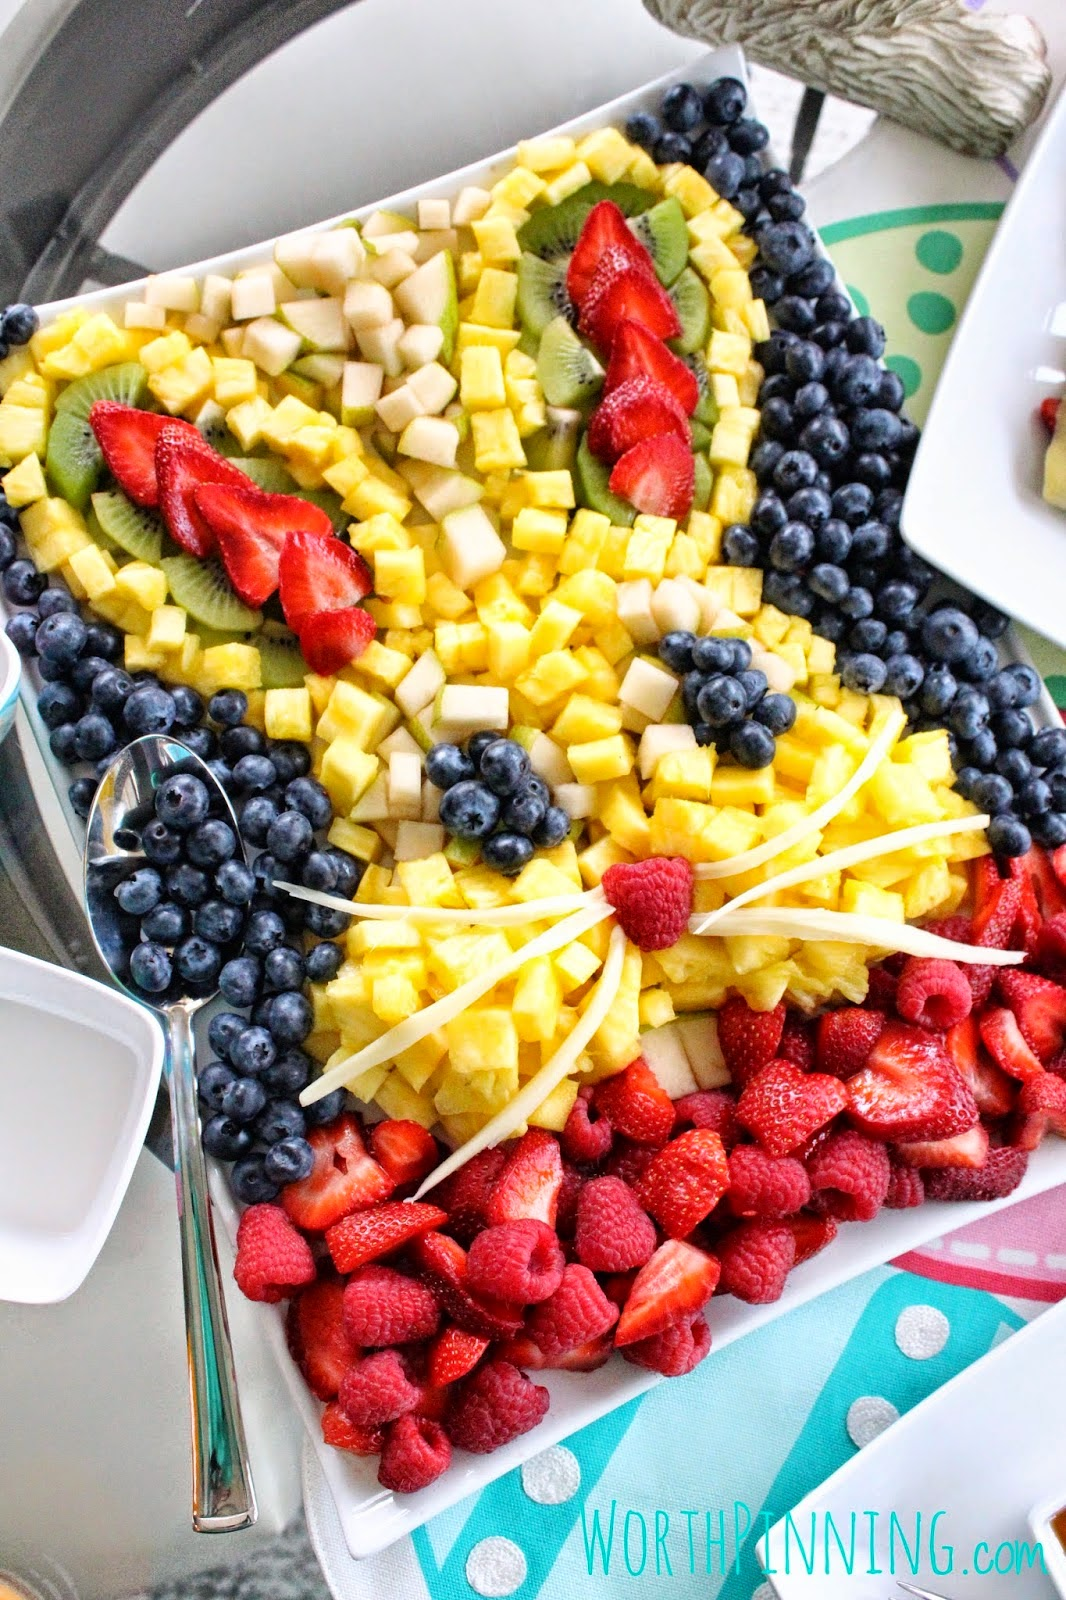 food serving ideals fun fruit bunny party healthy cut cheese